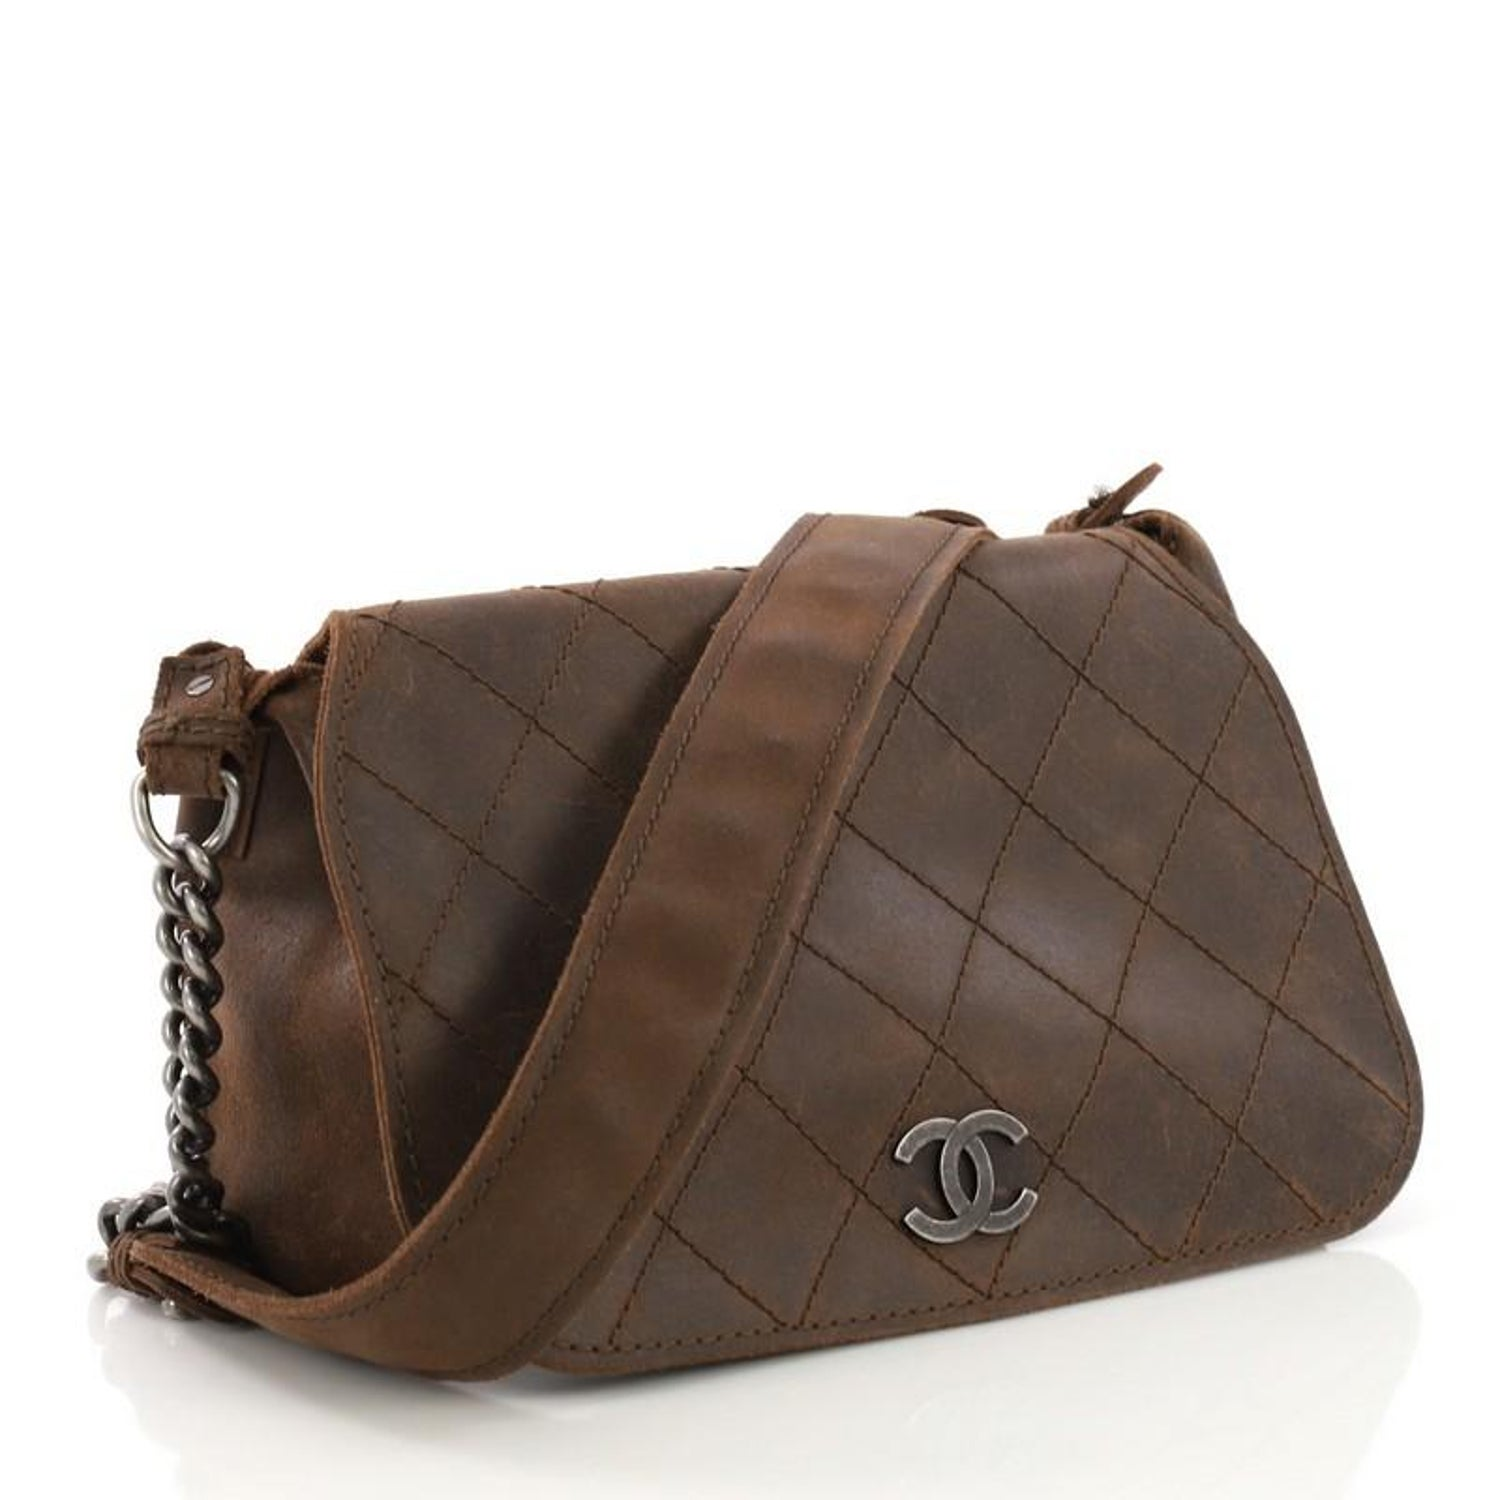 bfaac30f40da62 Chanel Paris-Edinburgh Highlander Messenger Bag Quilted Distressed Leather  Mediu at 1stdibs